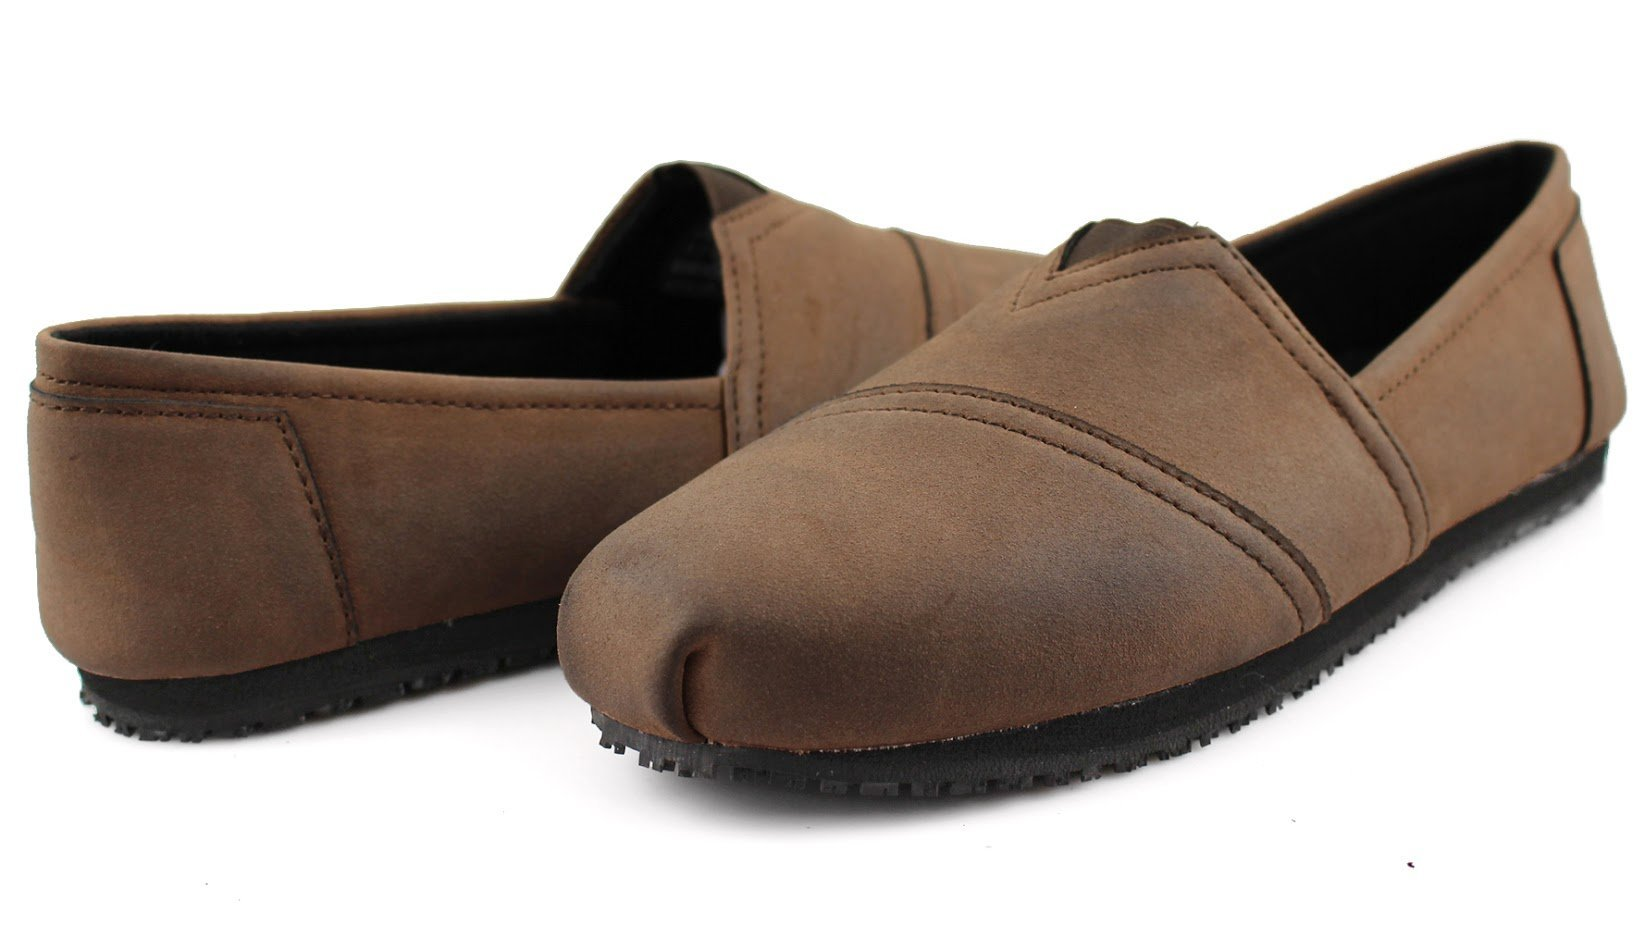 Townforst Women's Slip and Oil Resistant Non Slip Work Shoes Jess PU Leather Slip-On Flat Brown 9